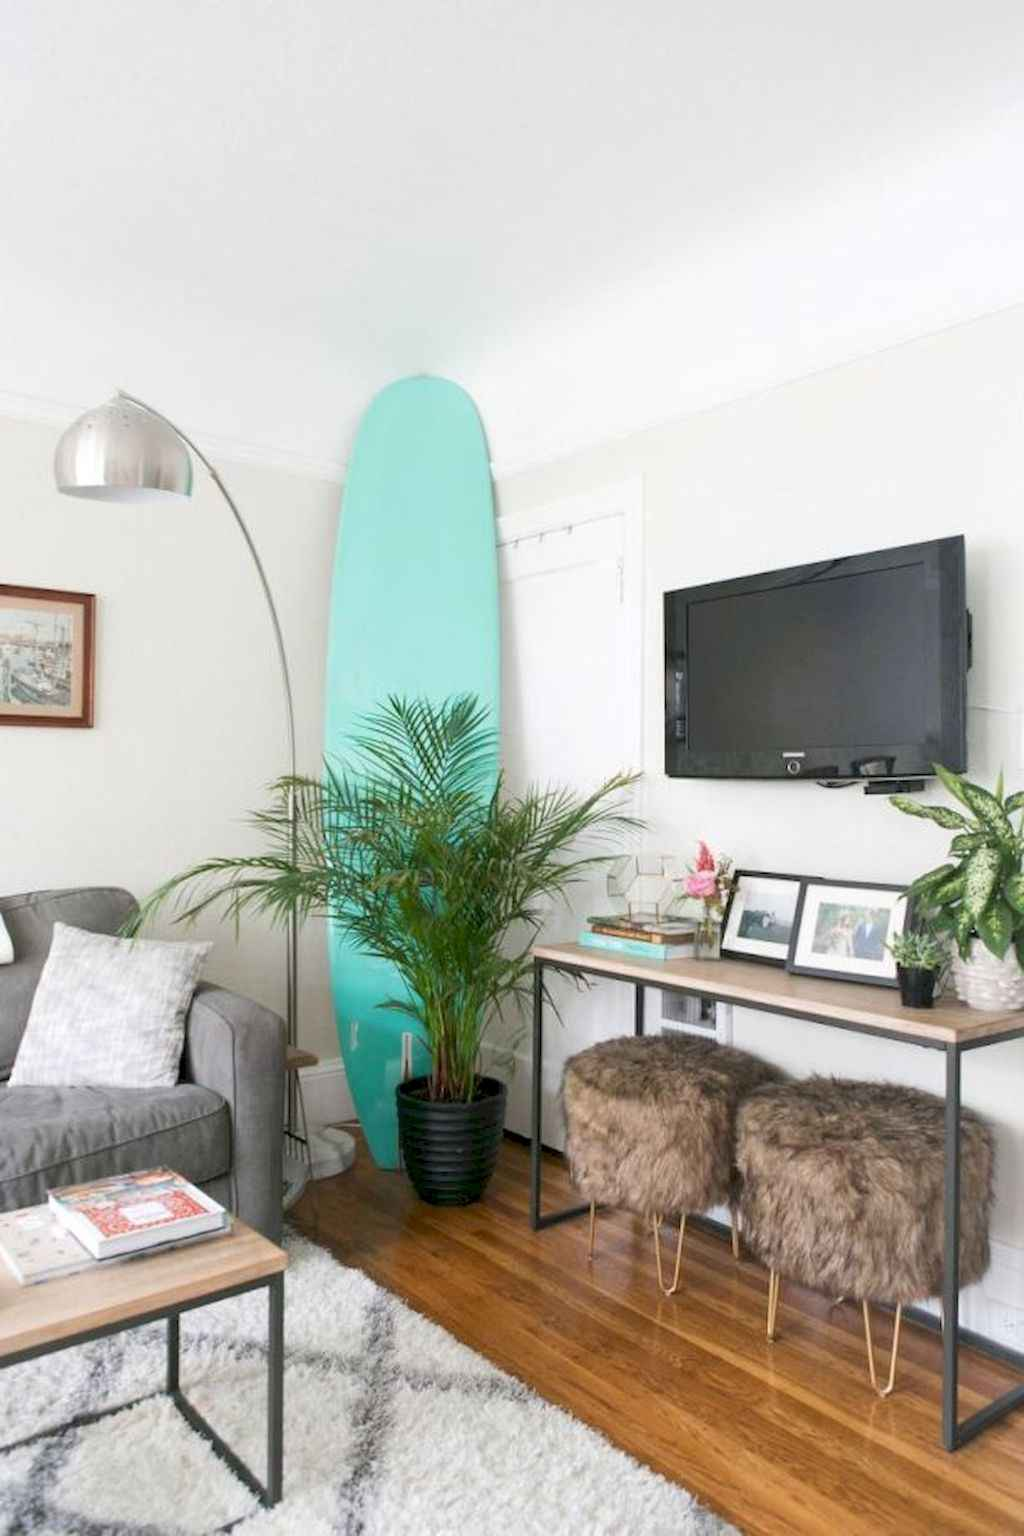 Couples first apartment decorating ideas (21)